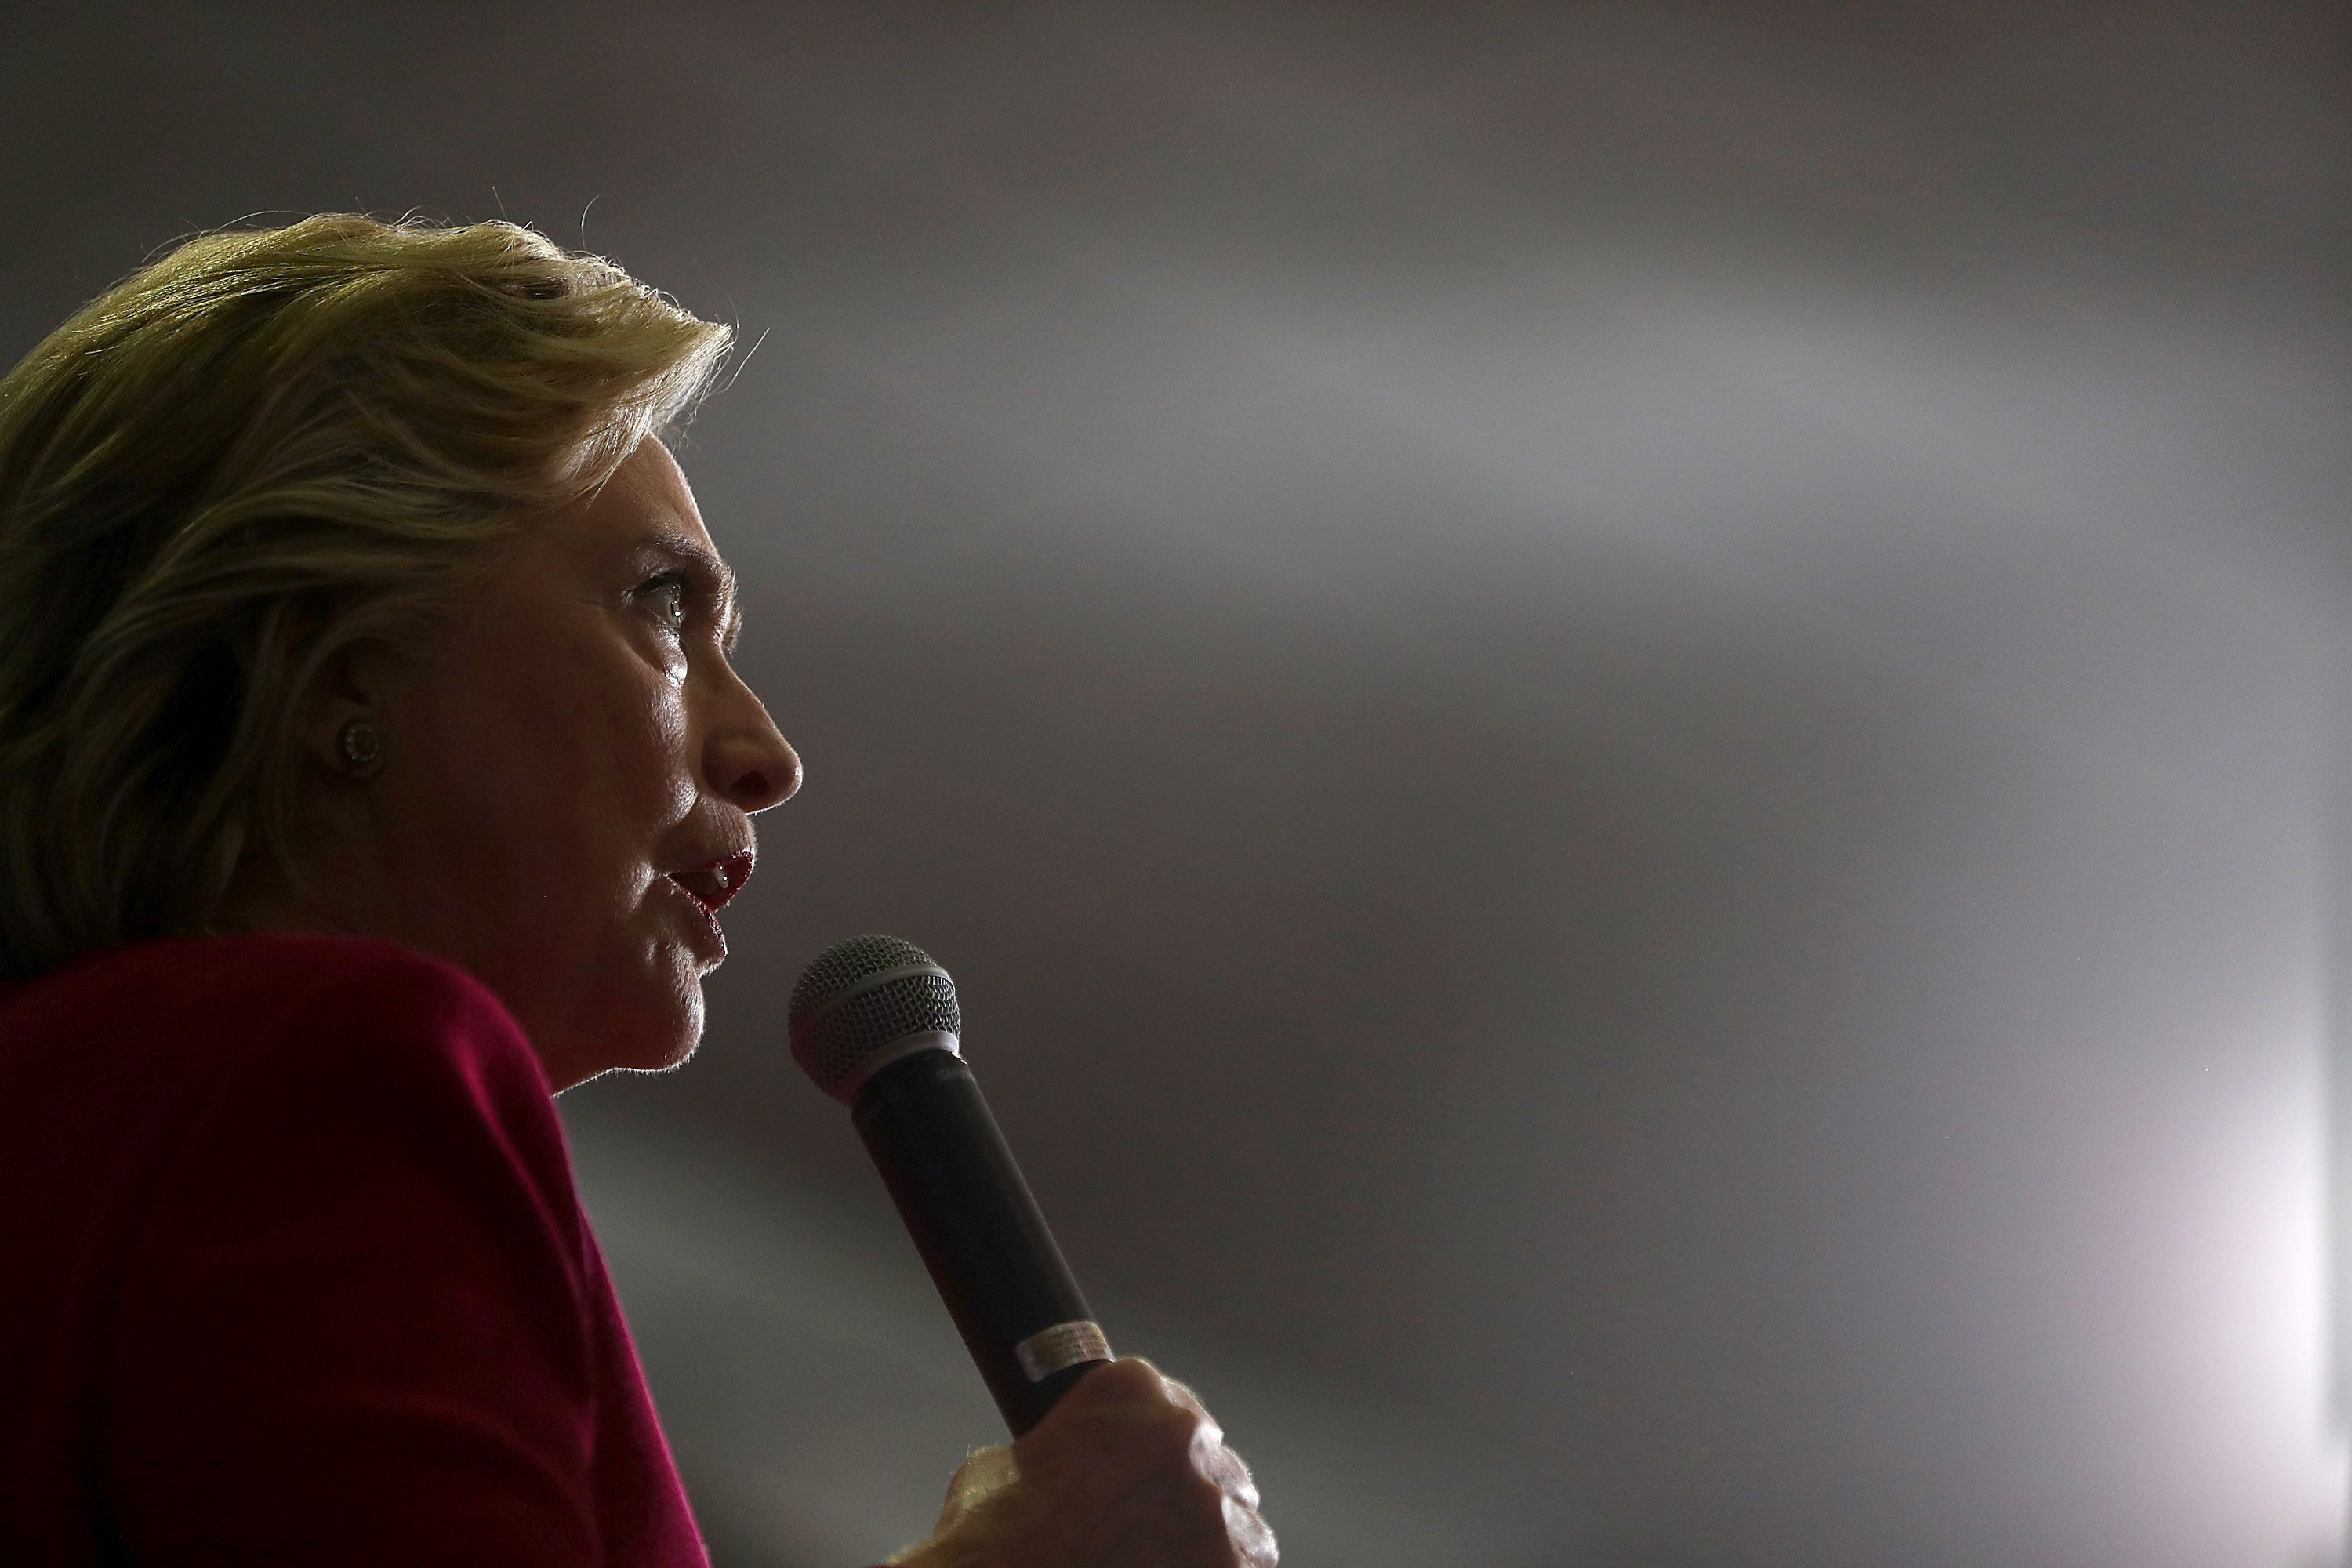 HARRISBURG, PA - OCTOBER 04:  Democratic presidential nominee former Secretary of State Hillary Clinton speaks during a Pennsylvania Democrats voter registration event at Zembo Shrine on October 4, 2016 in Harrisburg, Pennsylvania. Hillary Clinton is campaigning in Pennsylvania.  (Photo by Justin Sullivan/Getty Images)